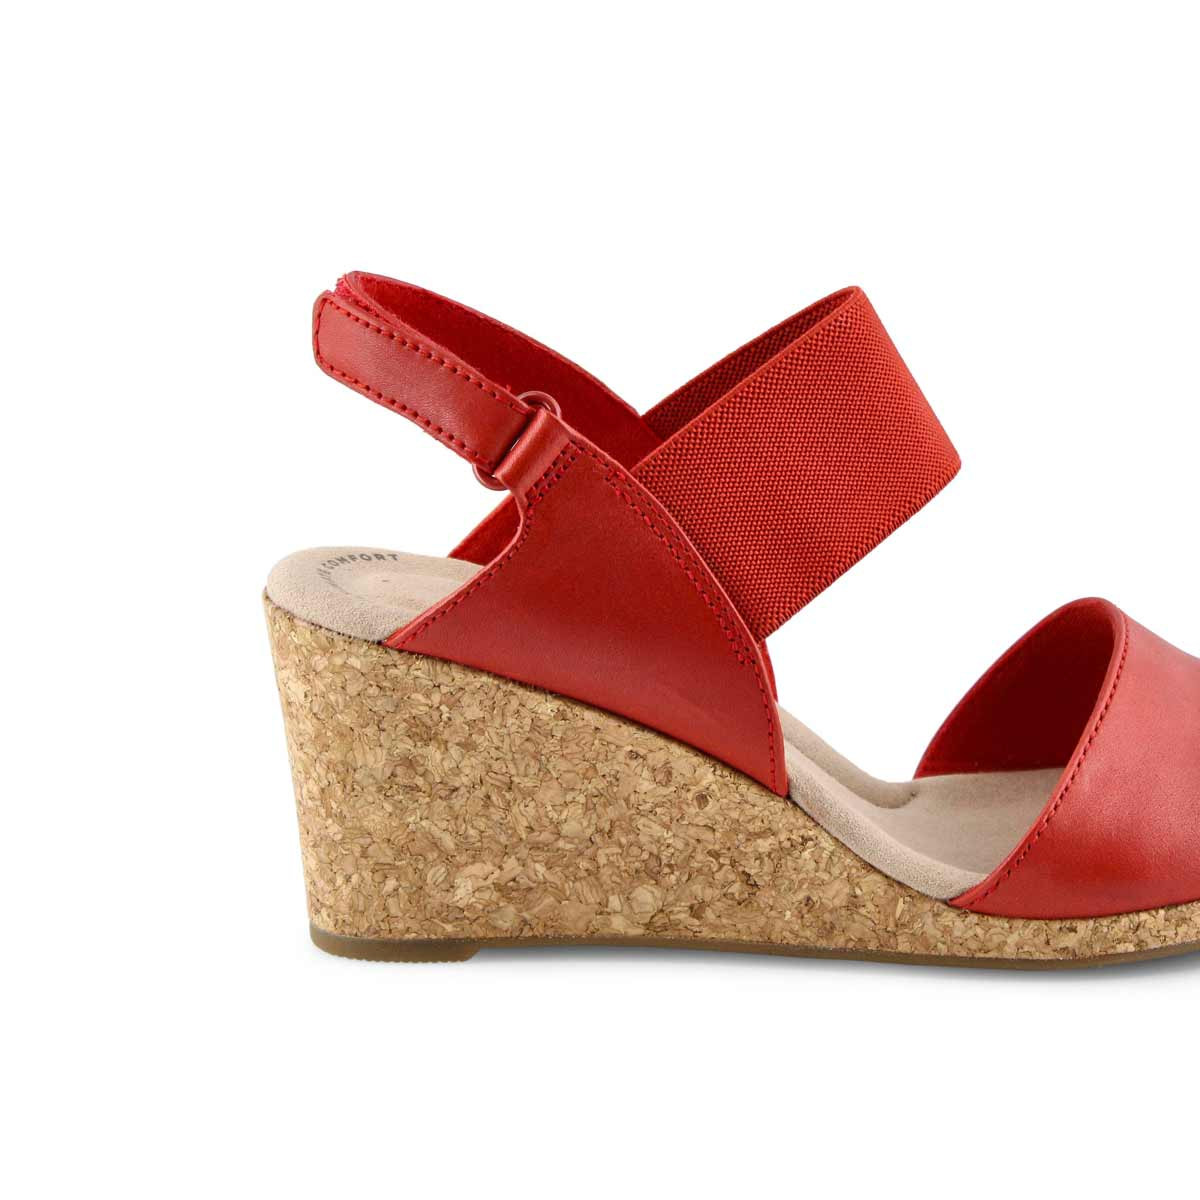 Lds Lafley Lily red wedge sandal -wide